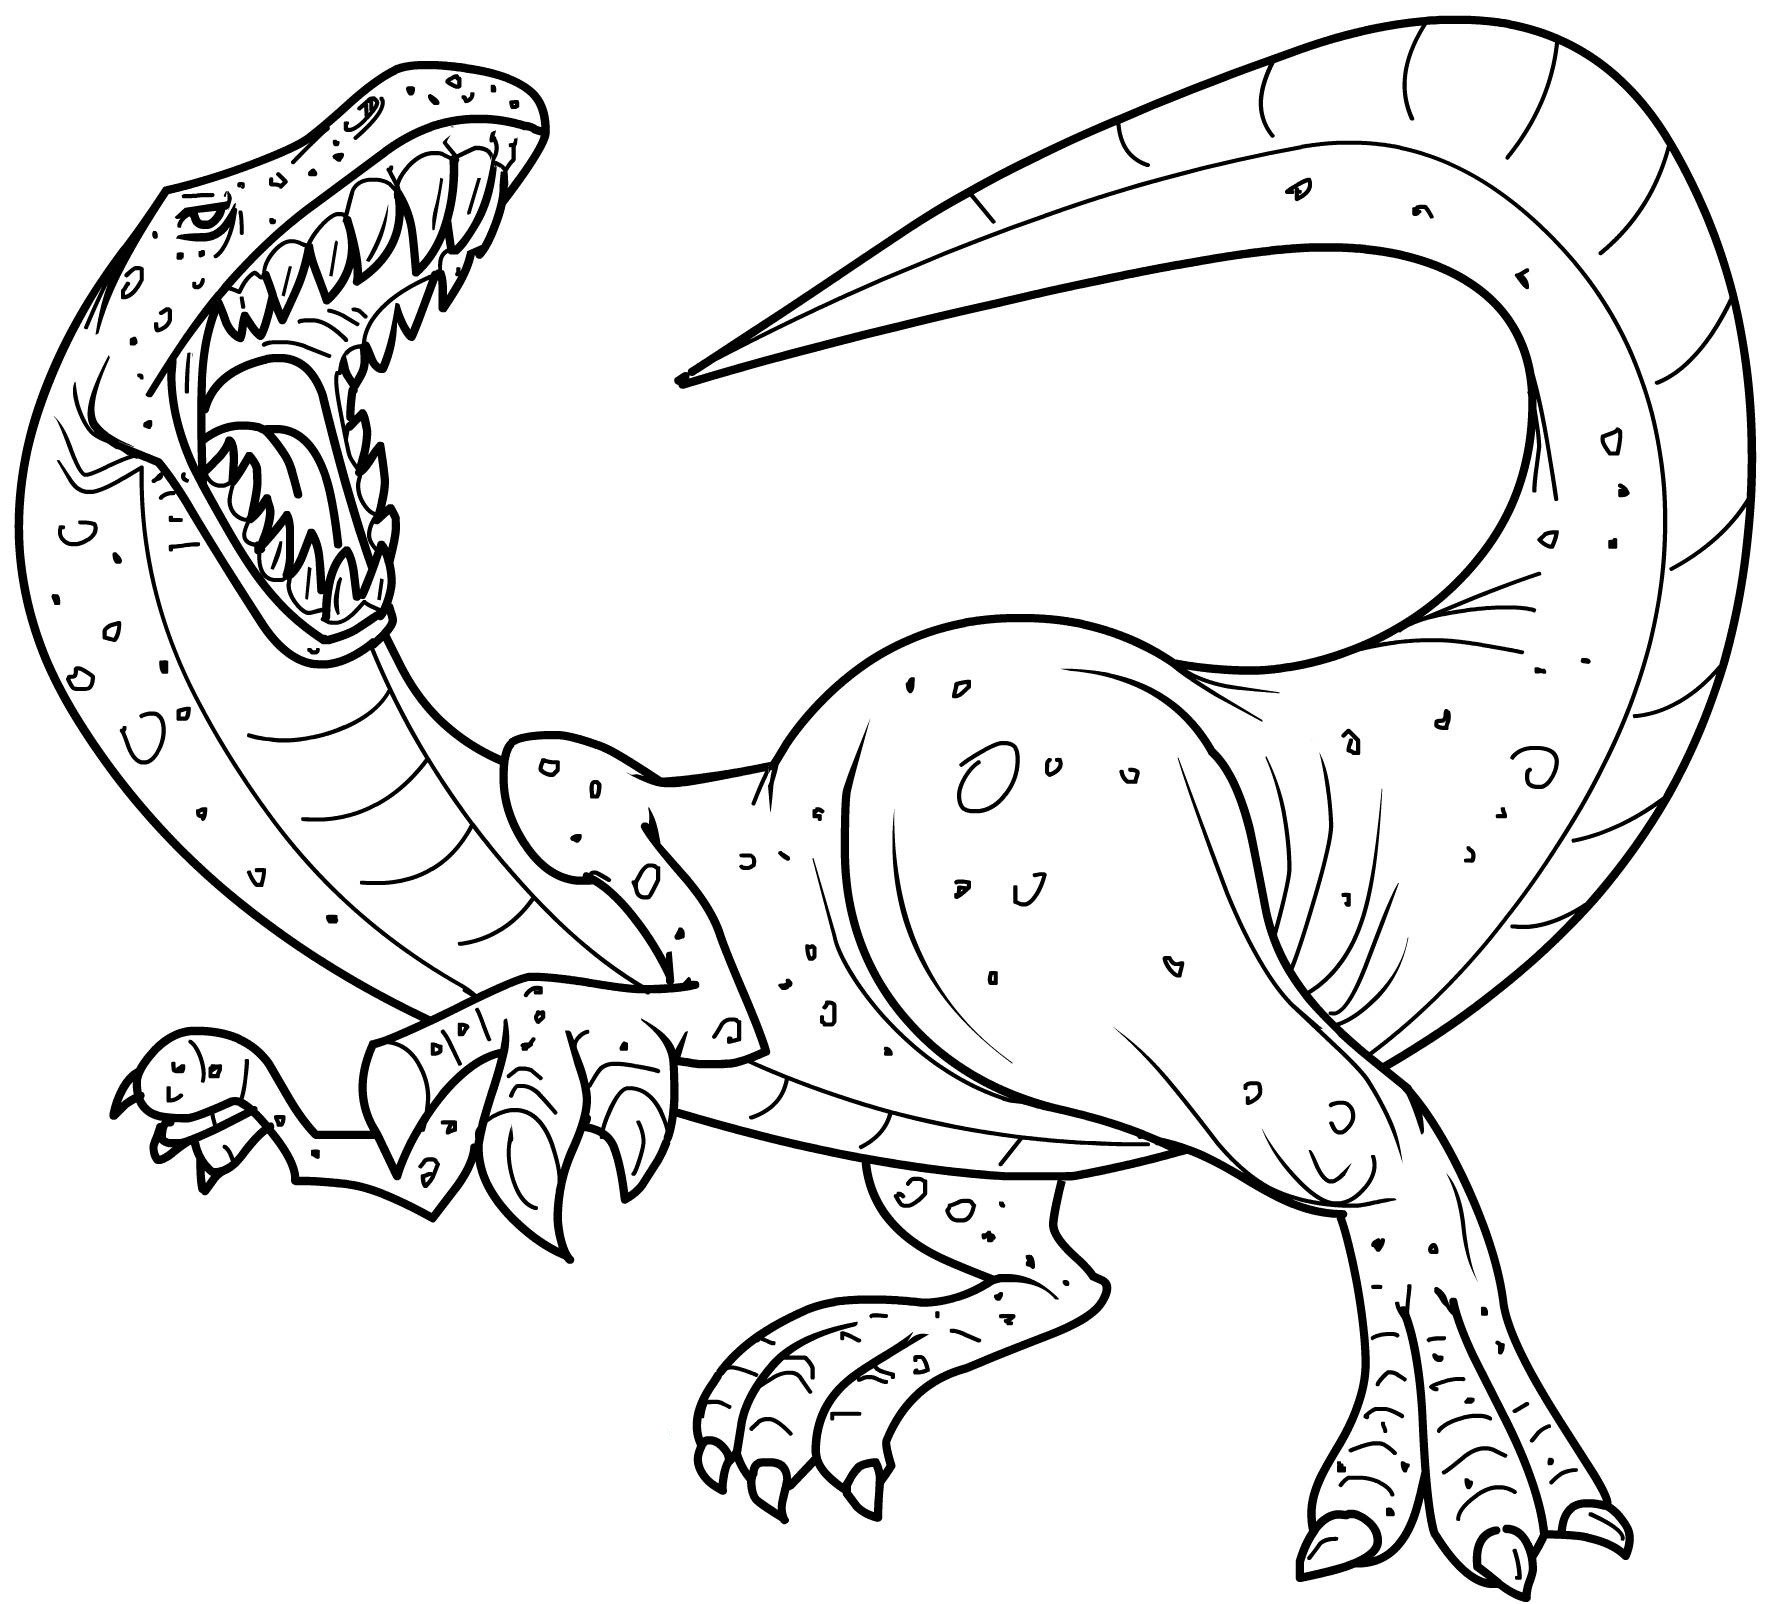 dinosaur images to colour printable dinosaur coloring pages for kids cool2bkids images colour dinosaur to